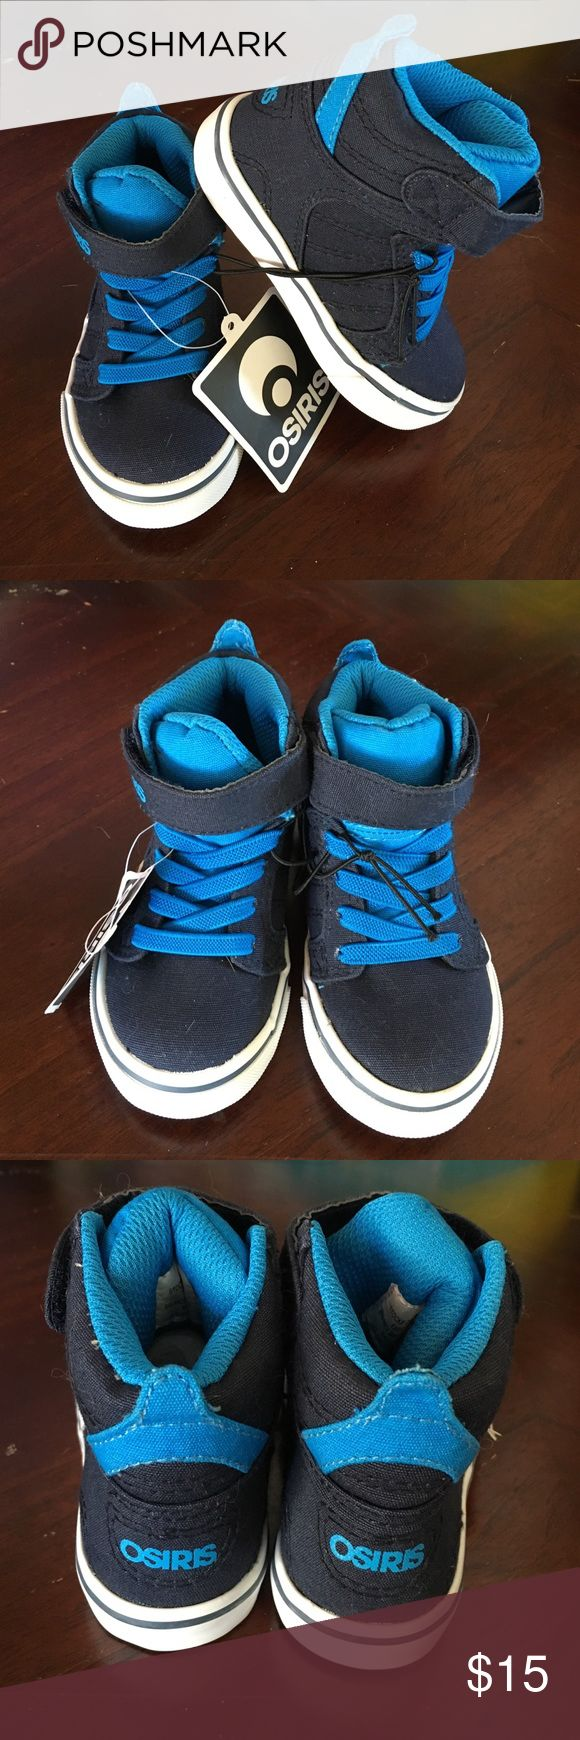 Osiris Toddler Boy High Tops Navy blue high tops with royal blue laces and interior lining. New with tags, never worn. Osiris Shoes Sneakers